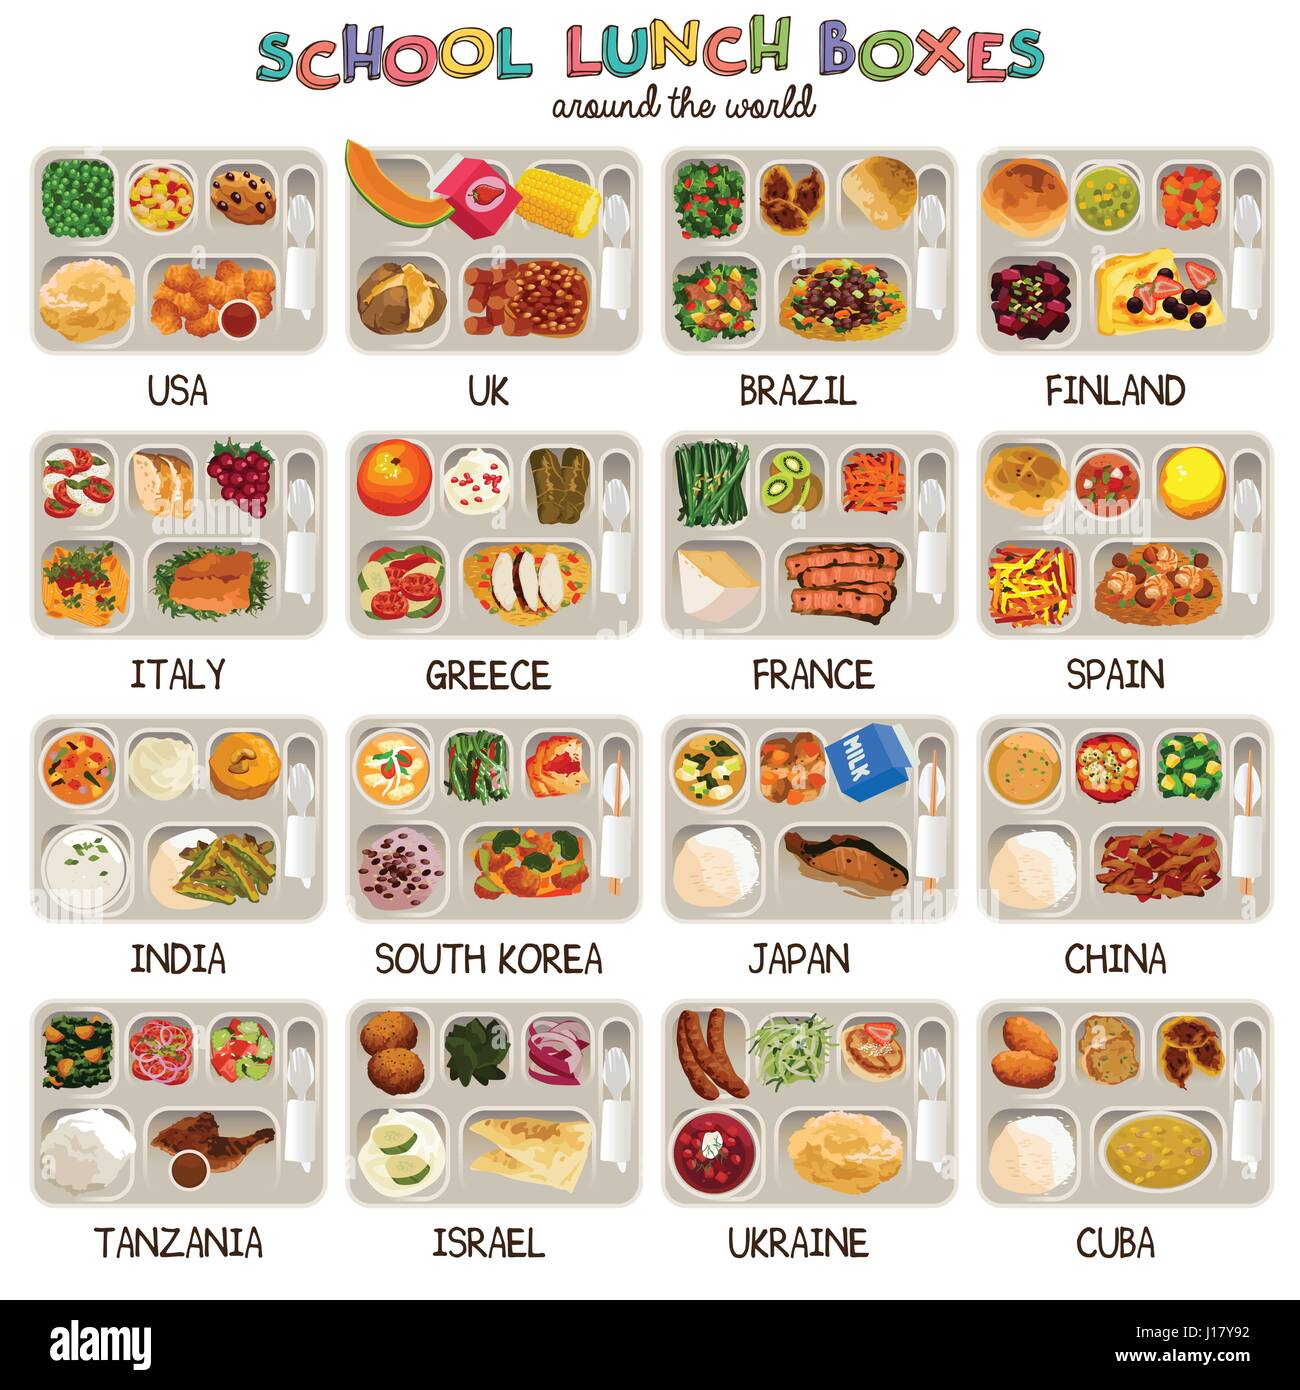 A vector illustration of school lunch boxes around the world - Stock Vector